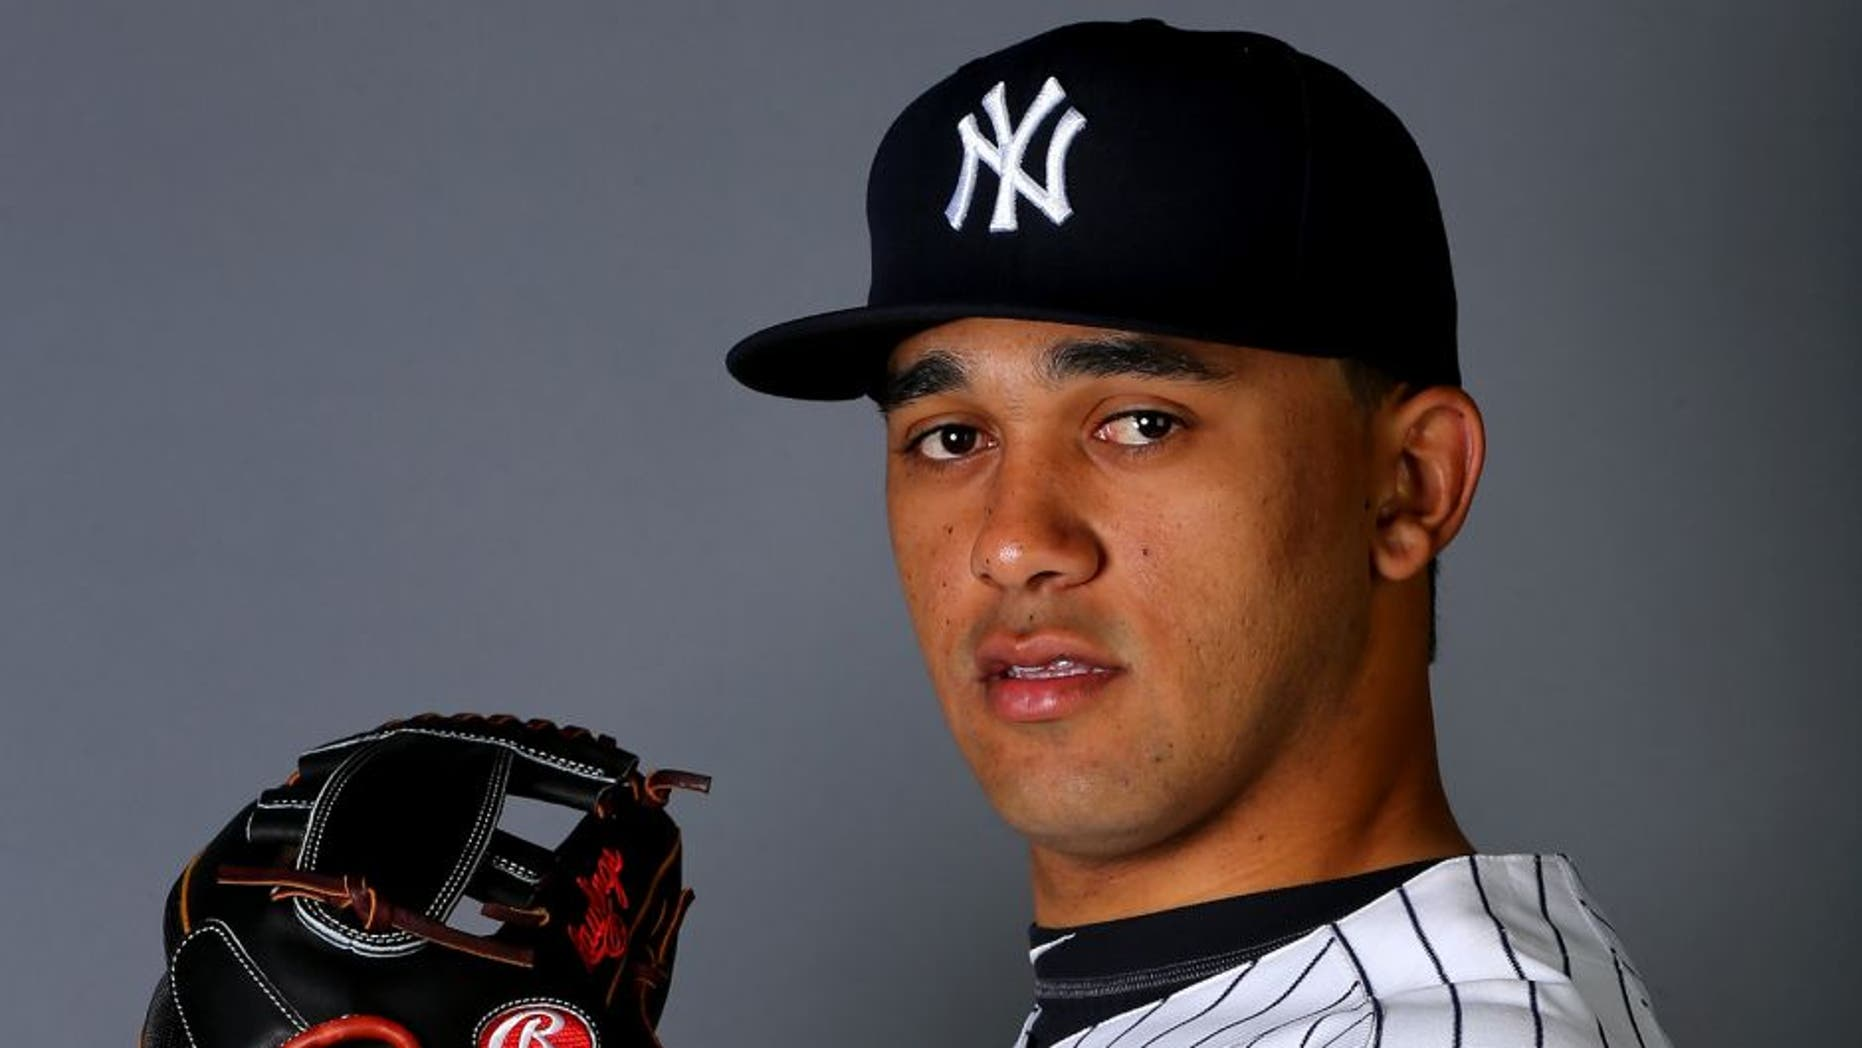 TAMPA, FL - FEBRUARY 27: Vicente Campos #81 of the New York Yankees poses for a portrait on February 27, 2015 at George M. Steinbrenner Stadium in Tampa,Florida. (Photo by Elsa/Getty Images)